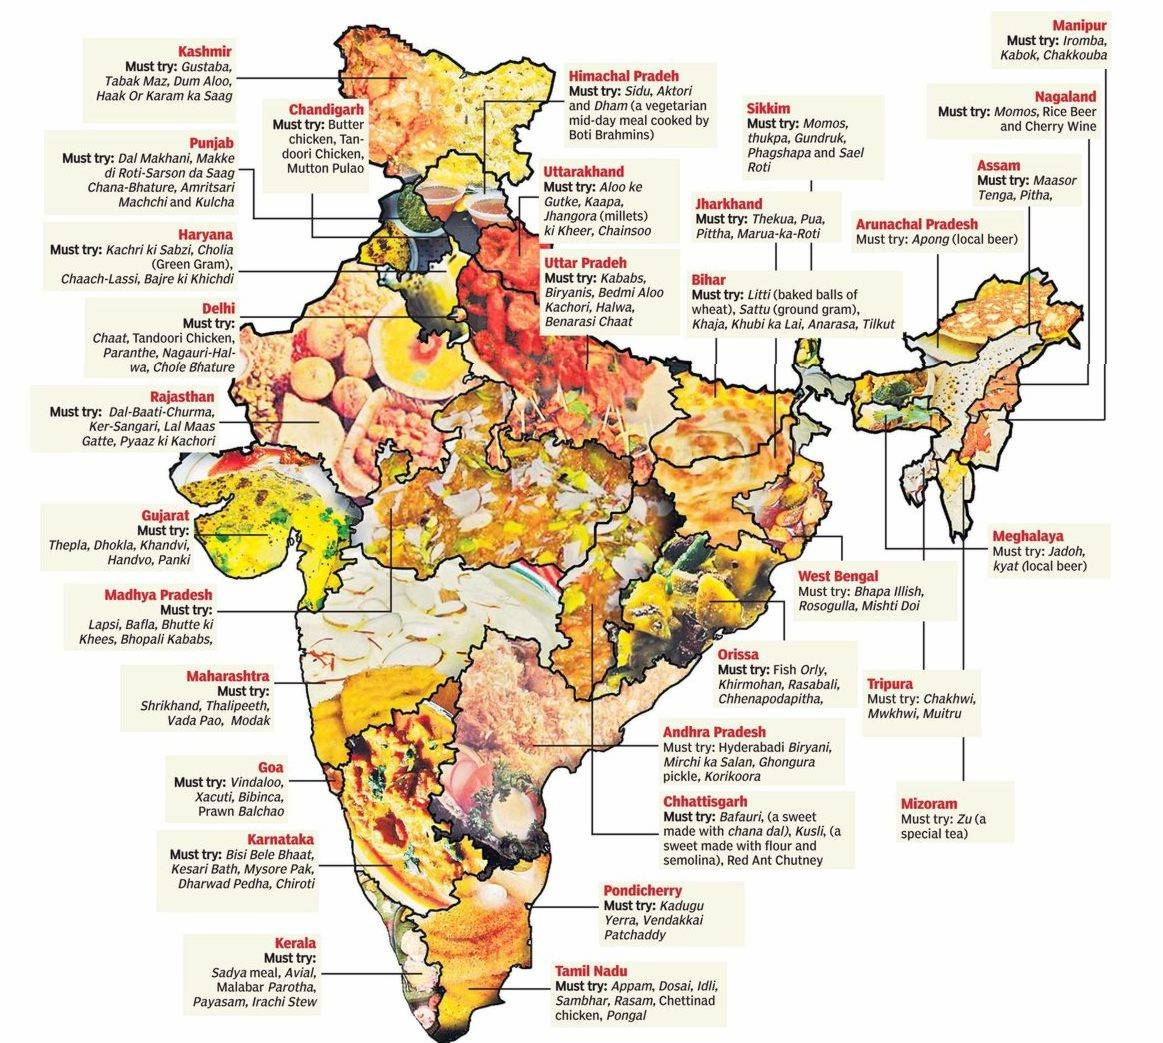 Tasty map of india my hindi forum this image has been resized click this bar to view the full image the original image is sized 1163x1043 gumiabroncs Image collections